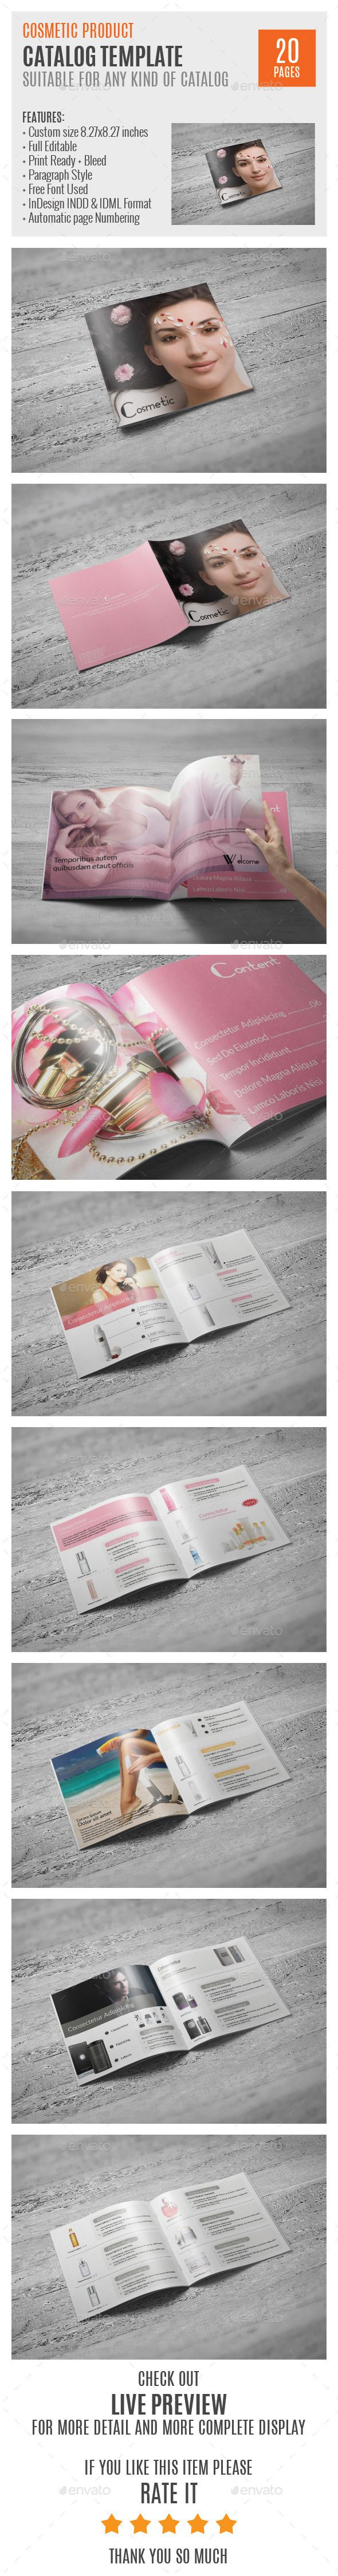 Cosmetic Square Indesign Catalog Template. Download: http://graphicriver.net/item/cosmetic-square-indesign-catalog-template/9725494?ref=ksioks